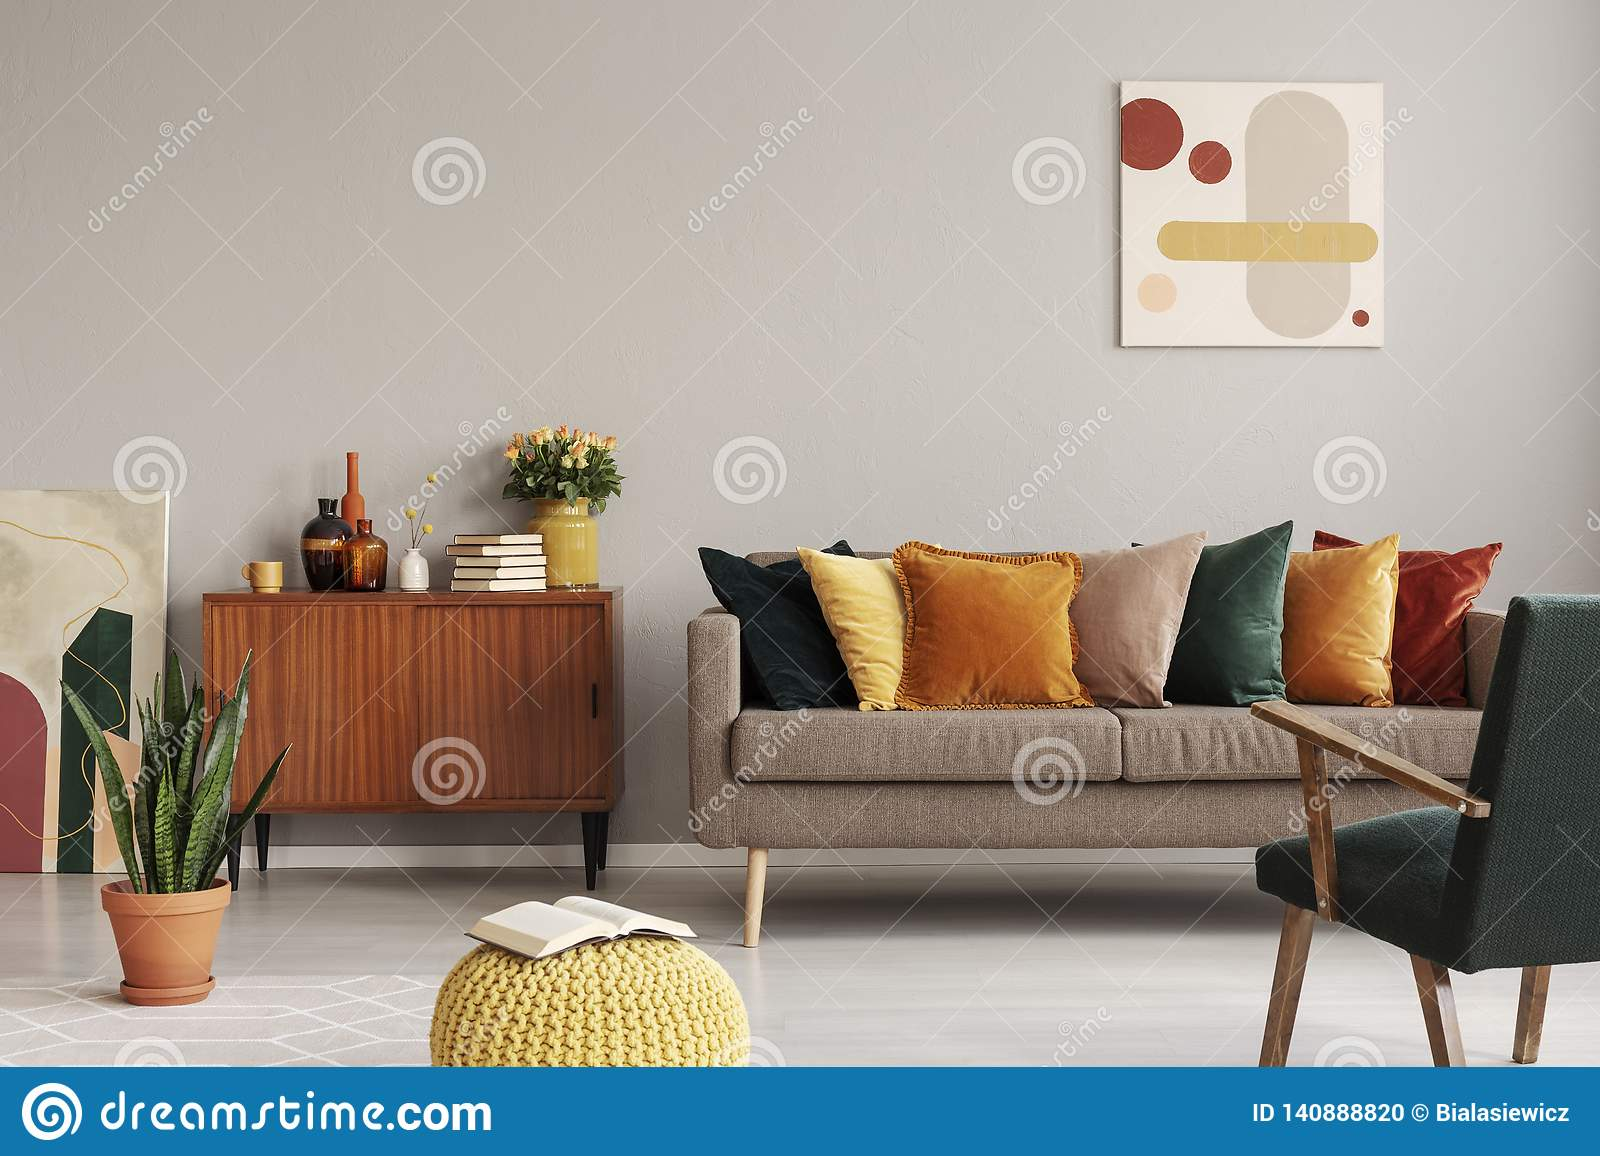 abstract painting on grey wall of retro living room interior with beige sofa with pillows